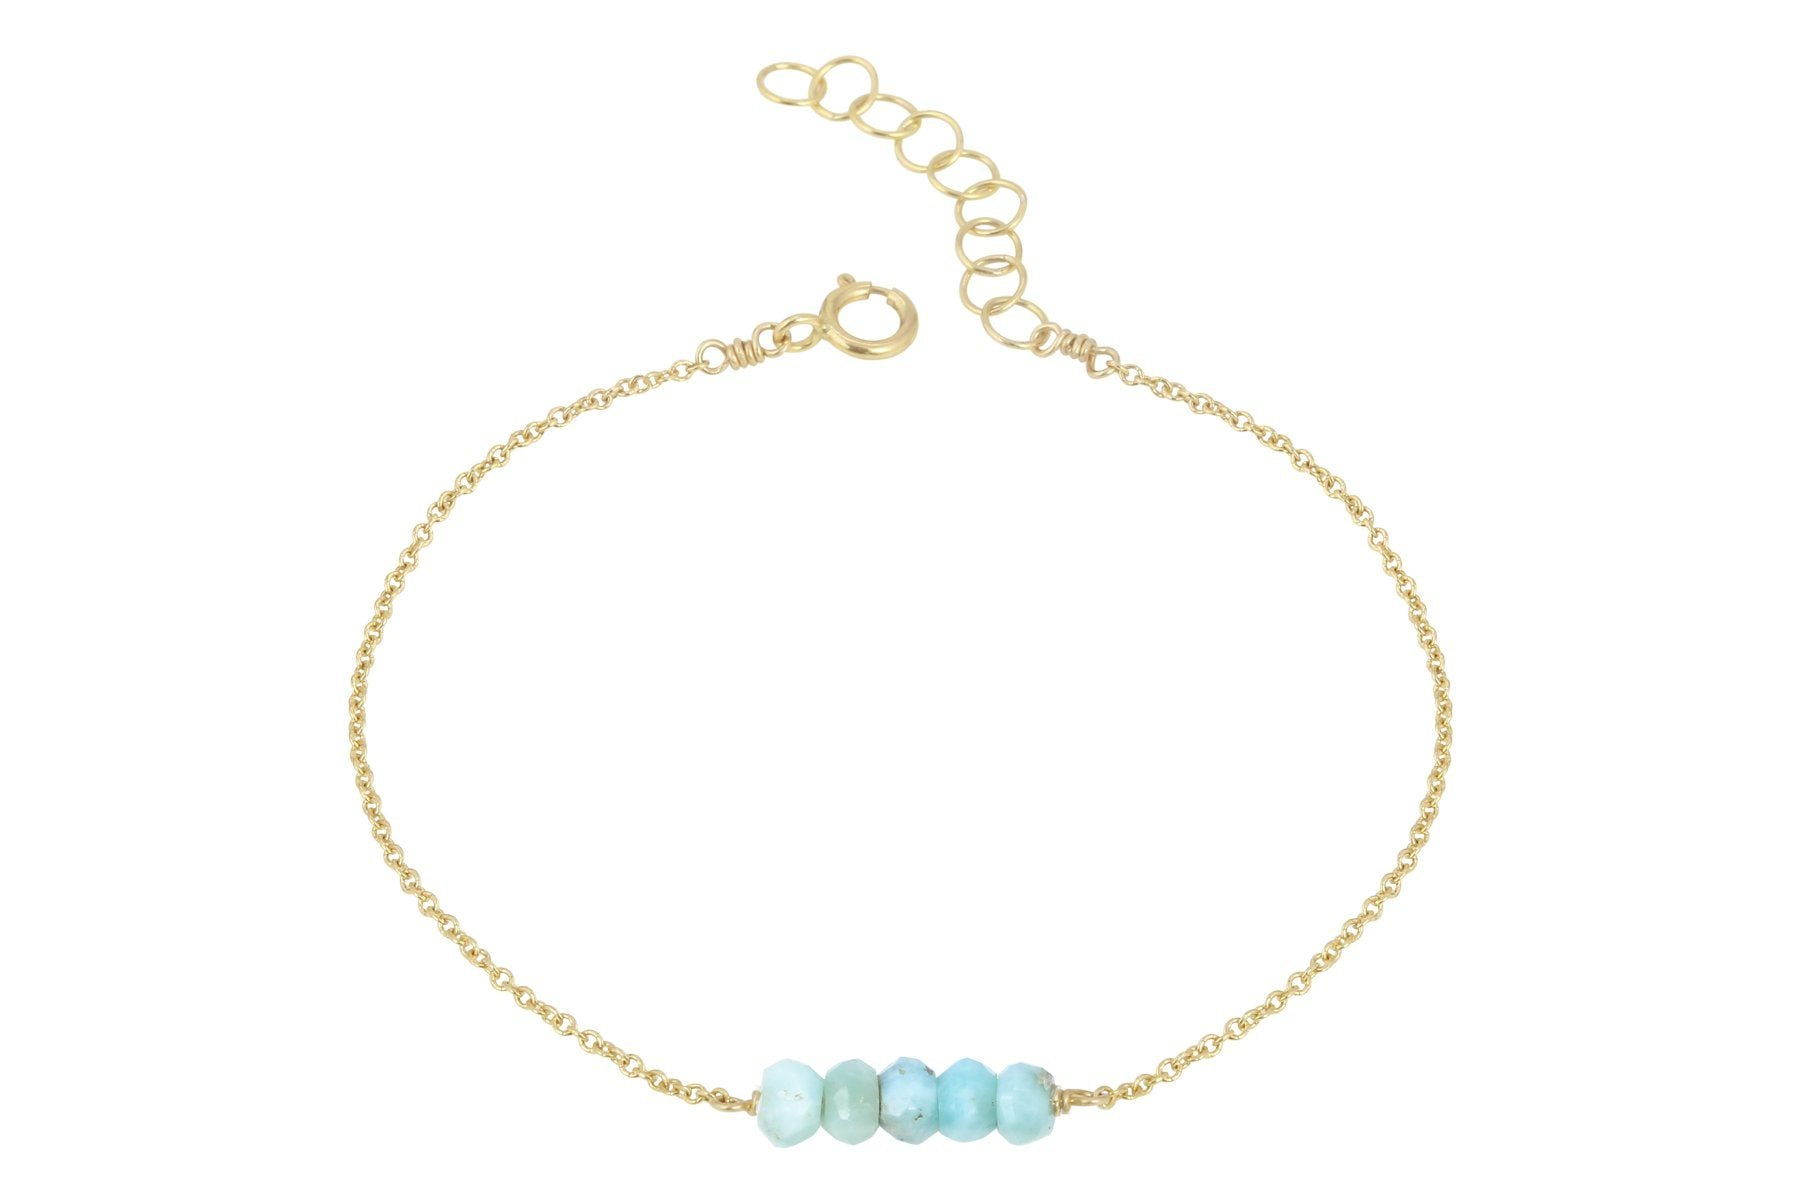 Elements- Larimar 5 stone gold filled adjustable chain bracelet